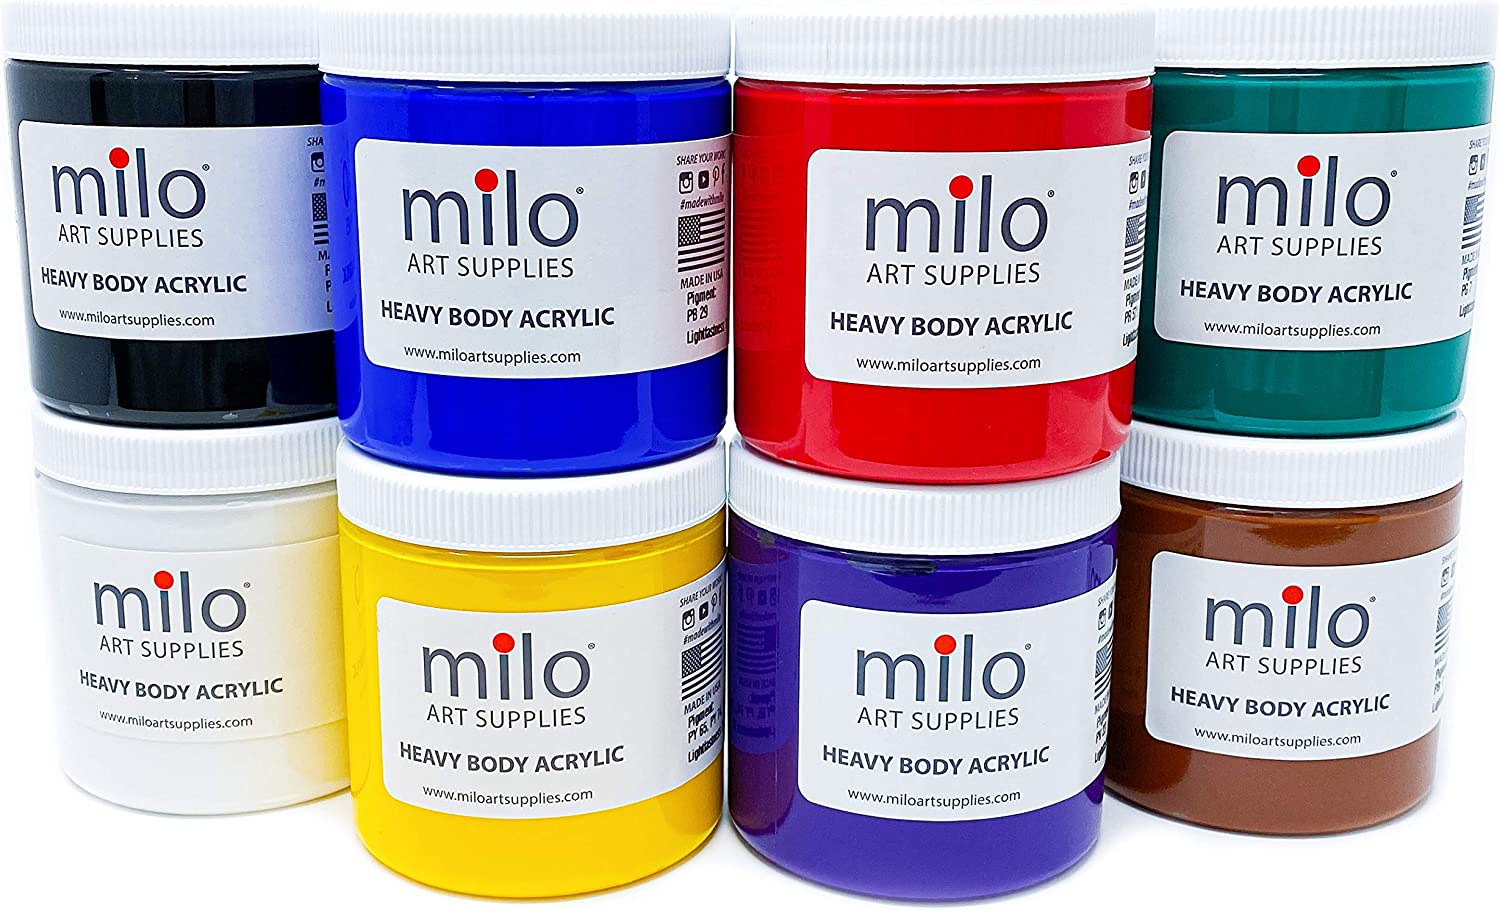 milo Heavy Body Acrylic Paint Set | 8 x 8 oz Jars | Made in the USA | Includes Palette Knife